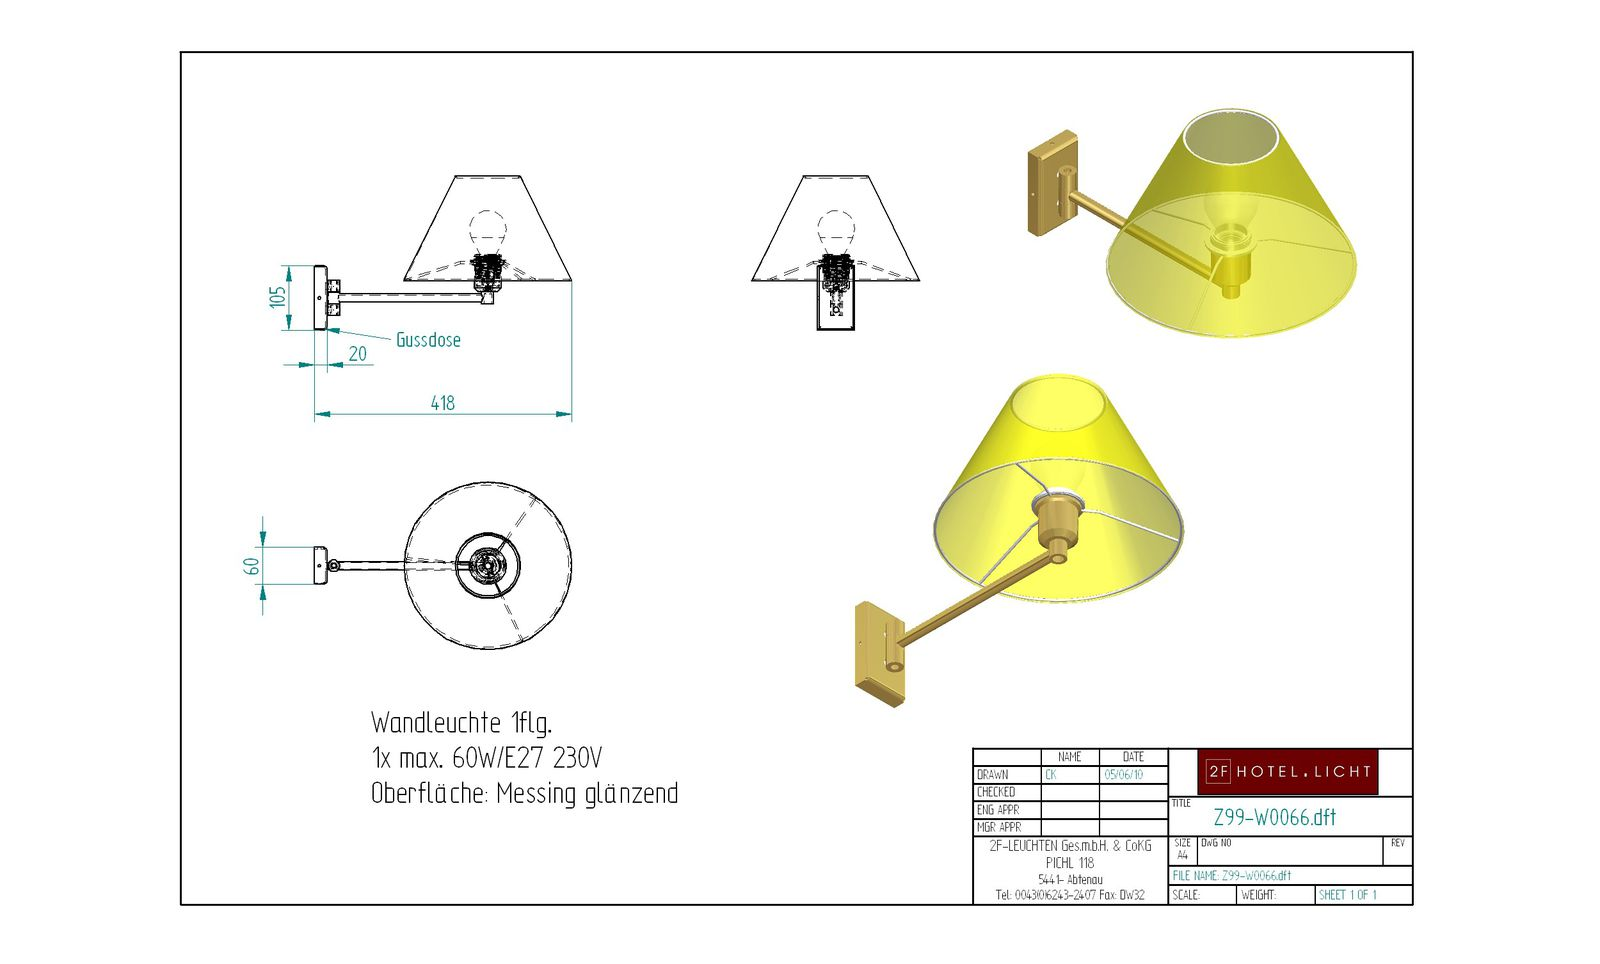 Wall lamp L=420 B=270 H=300 technical details: 1xE27 max 60Watt